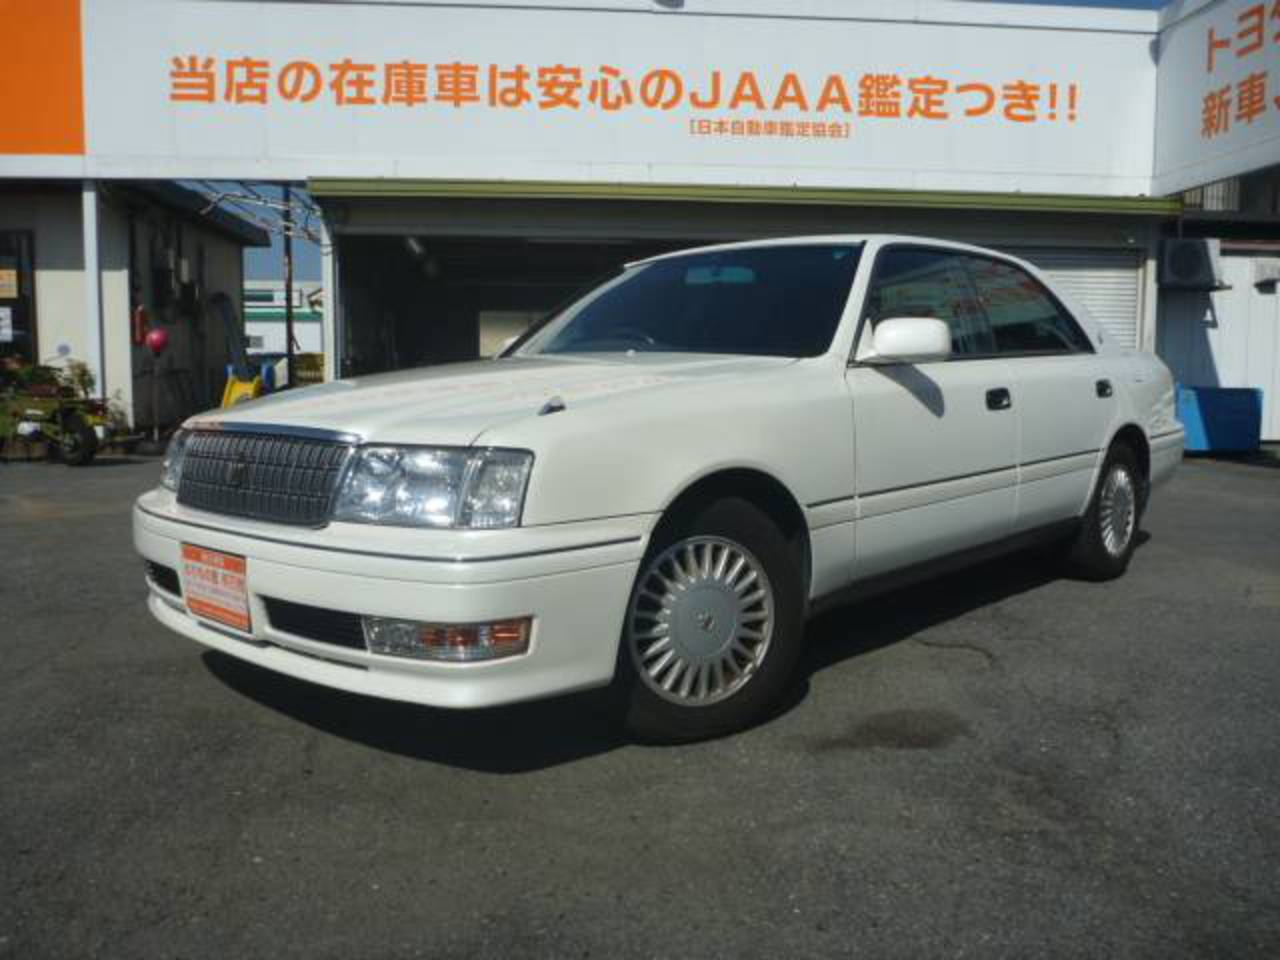 TOYOTA CROWN ROYAL SALOON. 2013/01/01 Update. FOB JAPANUS$2,660